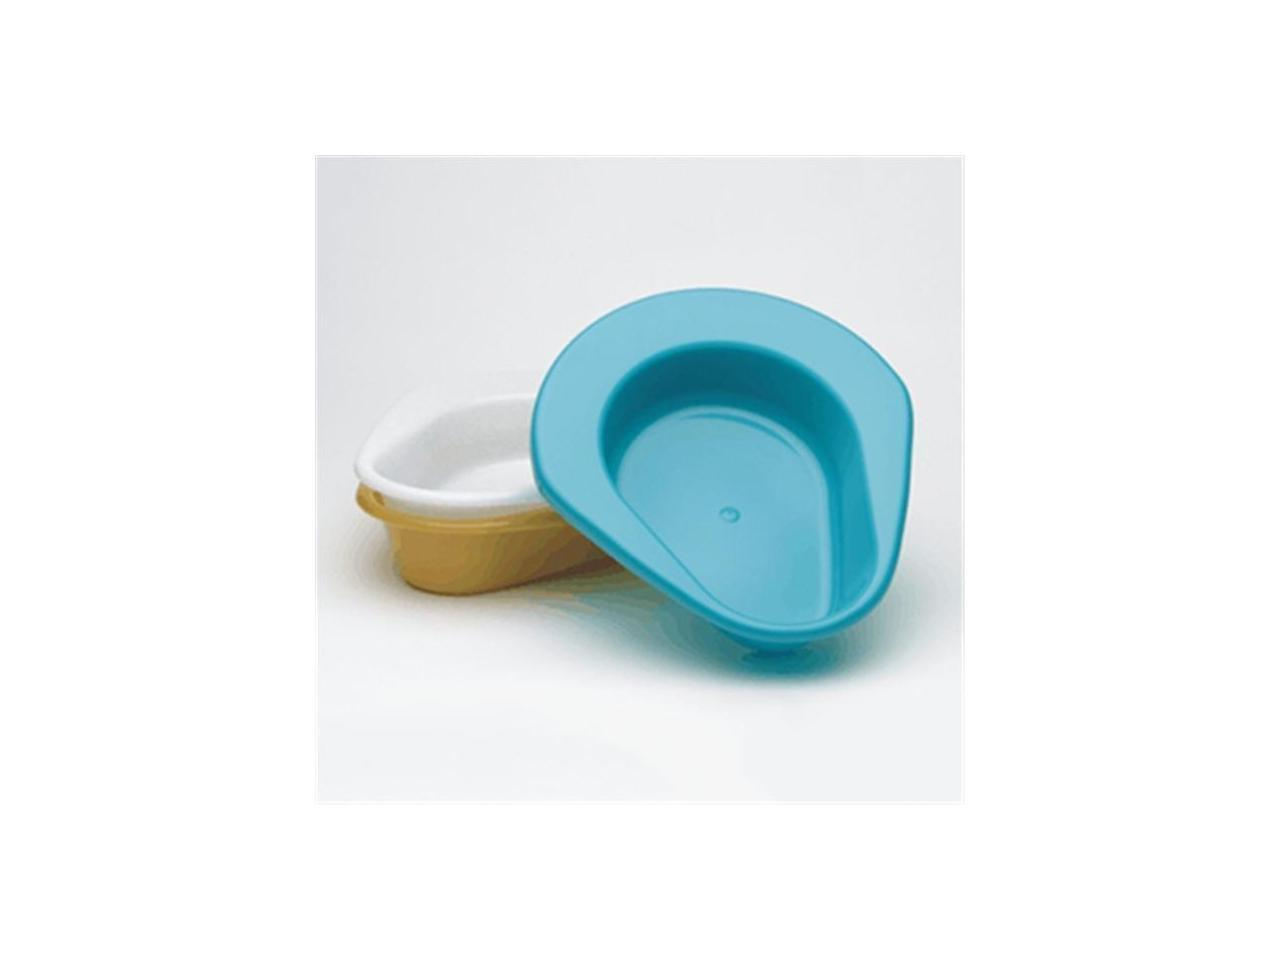 Bedpan Original Gold